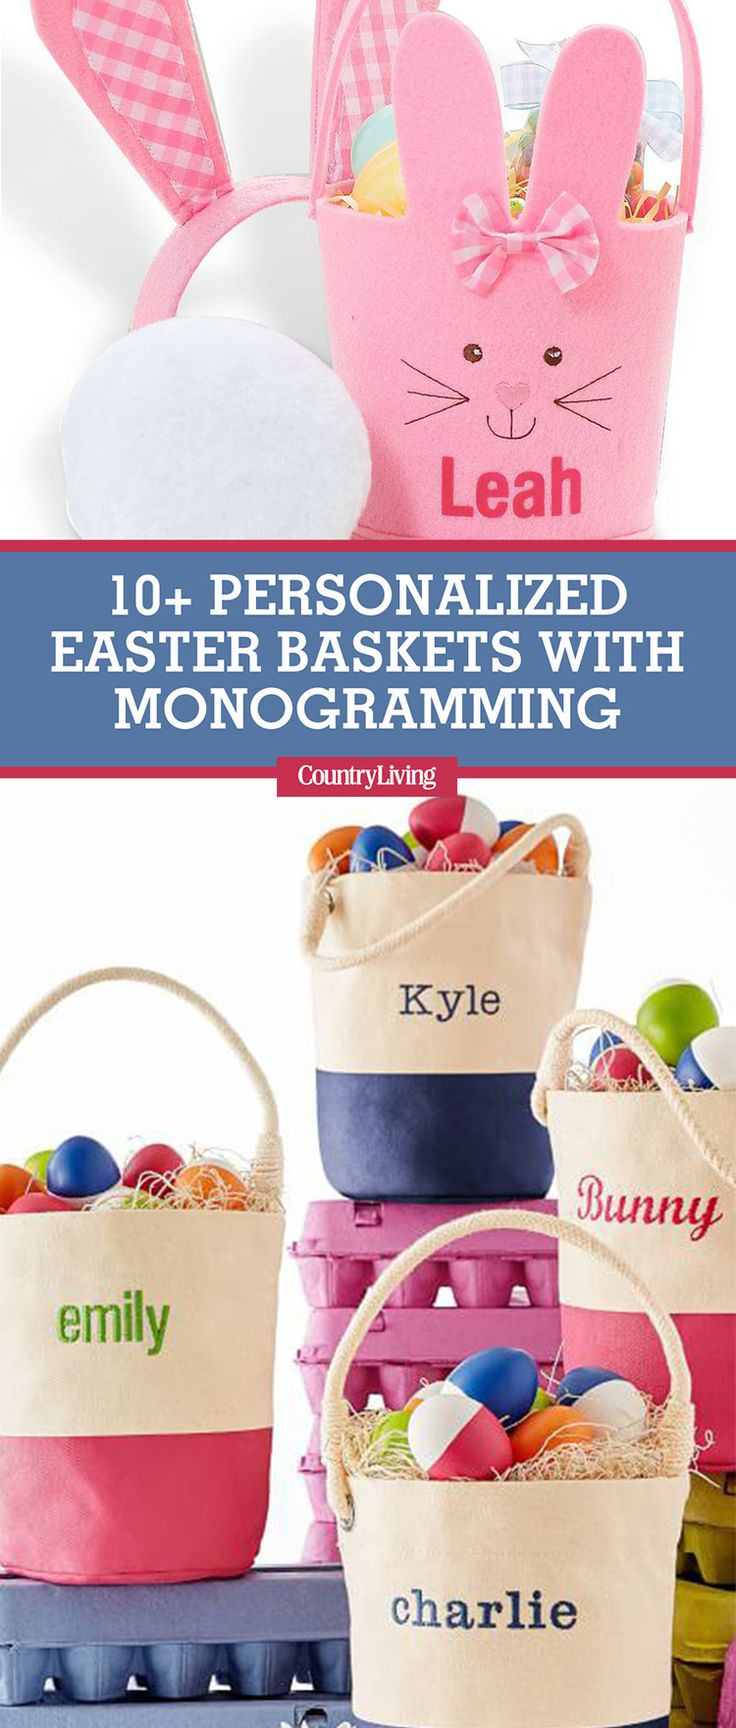 Best 25 personalized easter baskets ideas on pinterest easter 12 personalized easter baskets that take monogramming to the next level negle Image collections